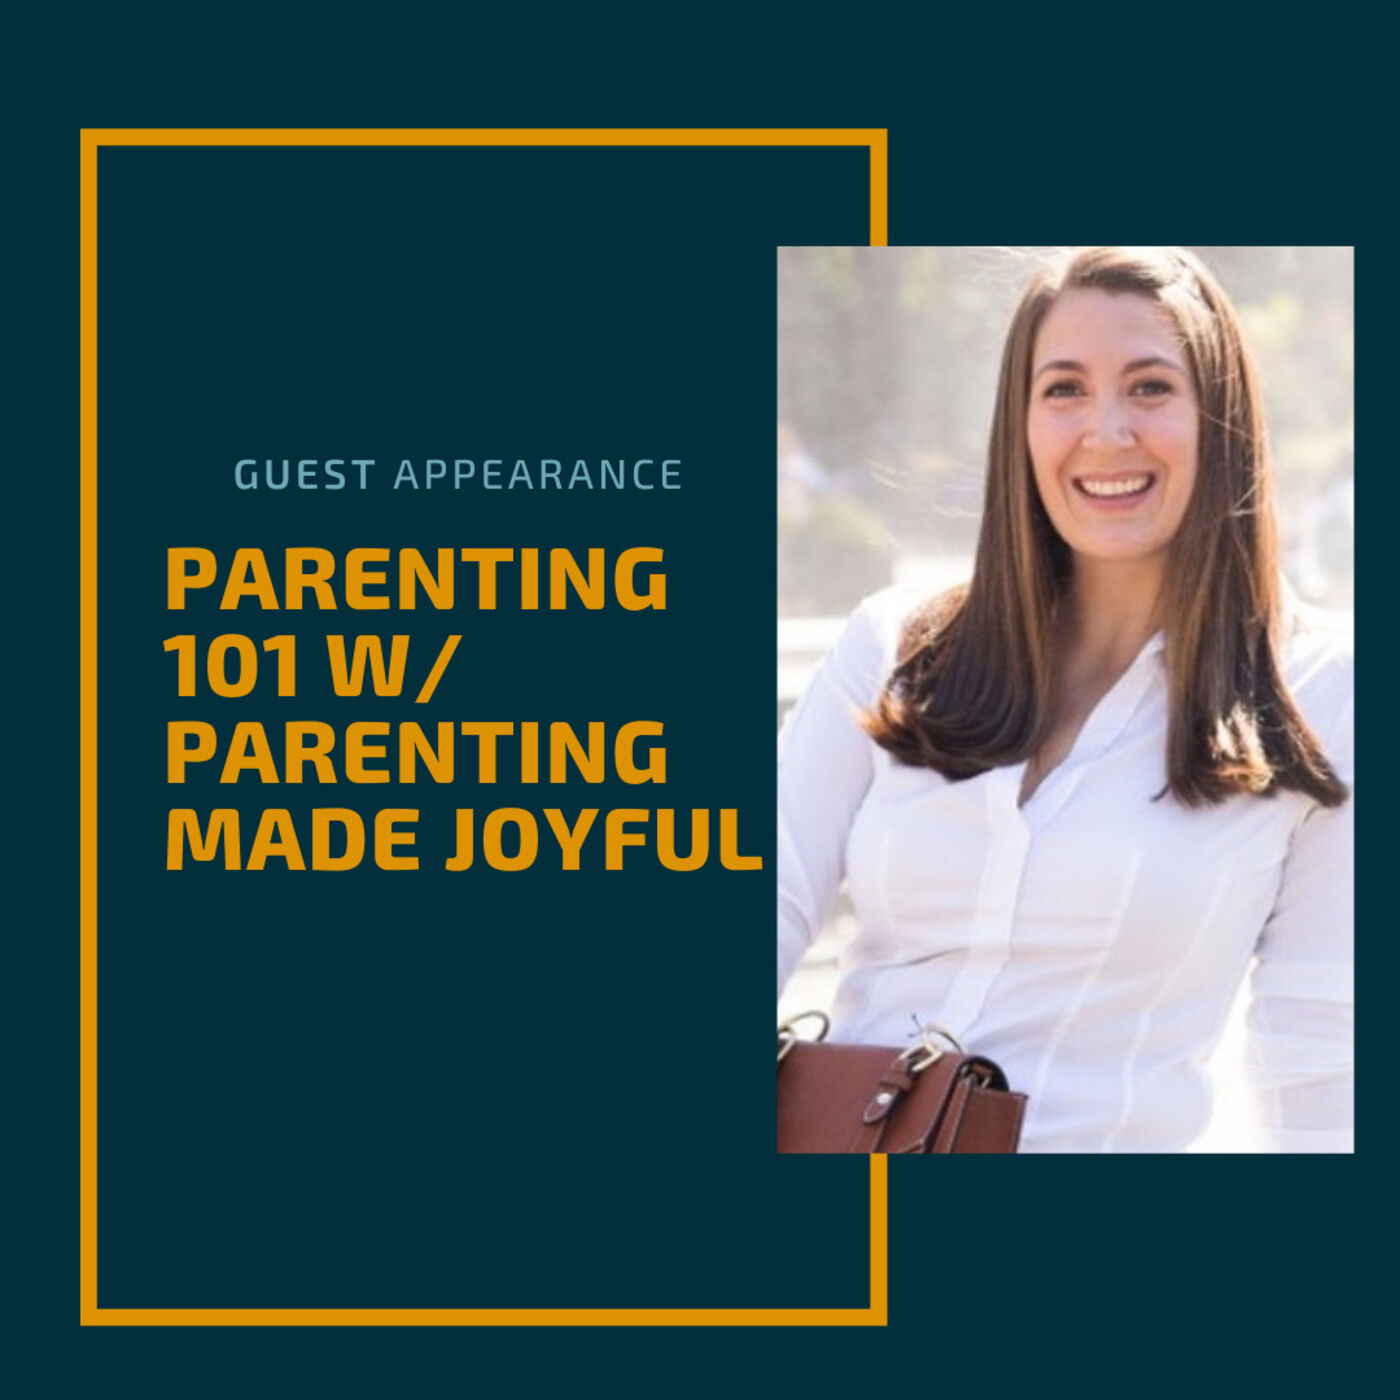 Parenting 101 w/ Parenting Made Joyful